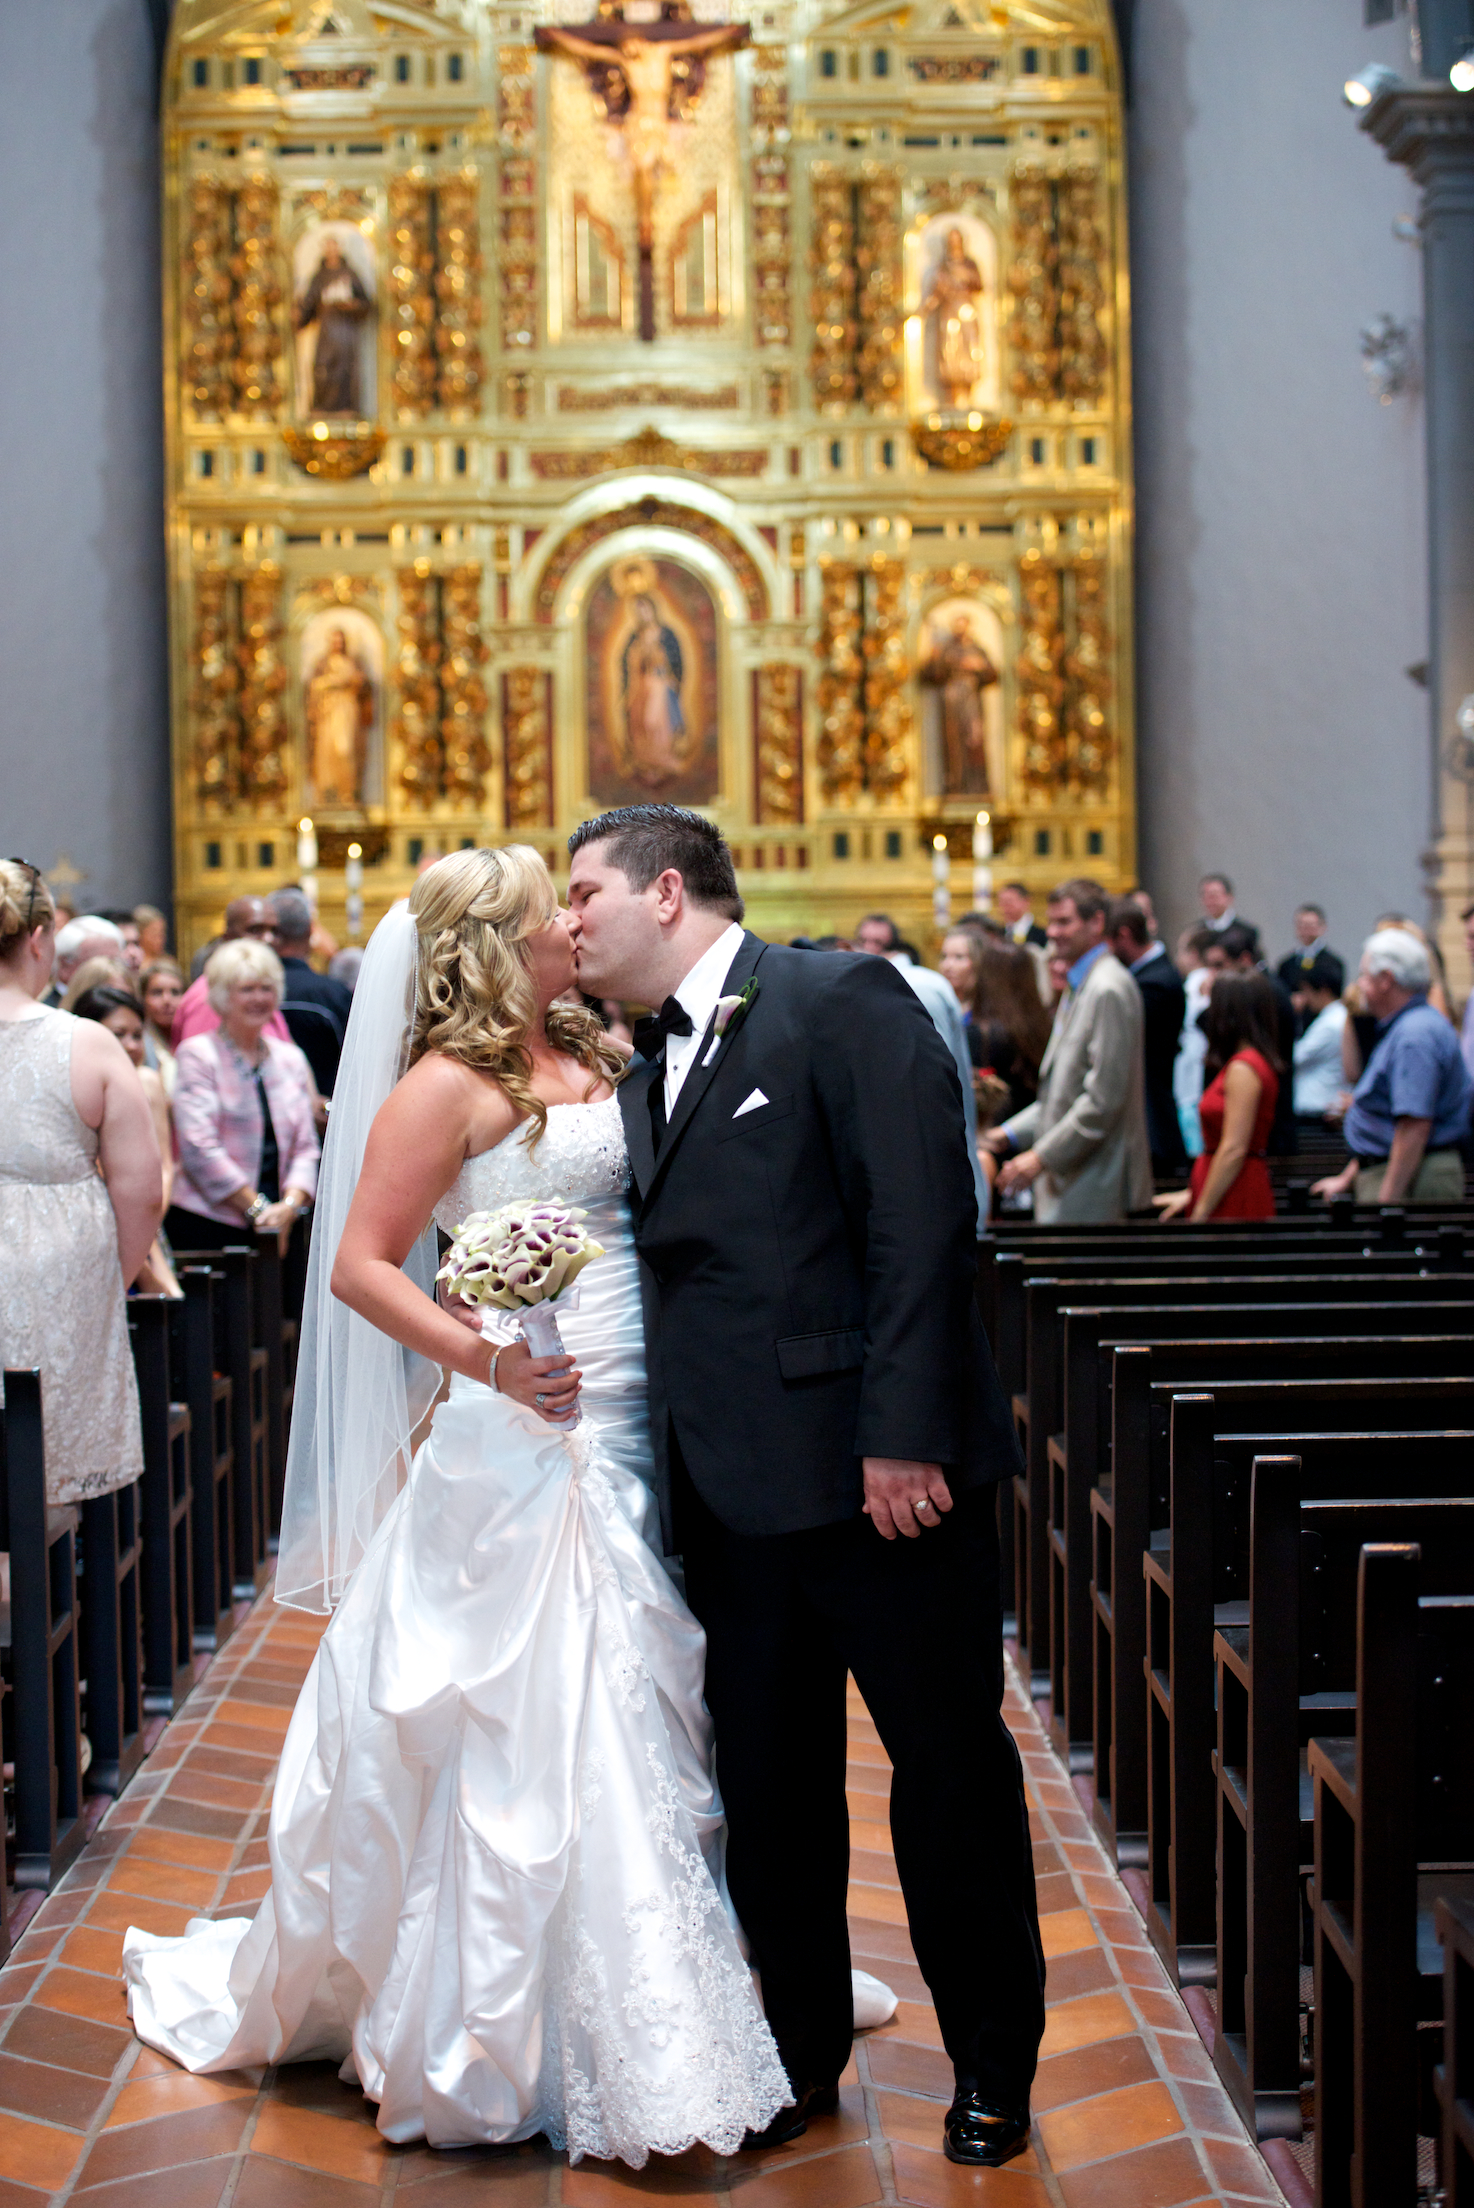 They Wanted A Traditional Catholic Wedding With Services Held At The Mission San Juan Capistrano And Reception Viejo Country Club